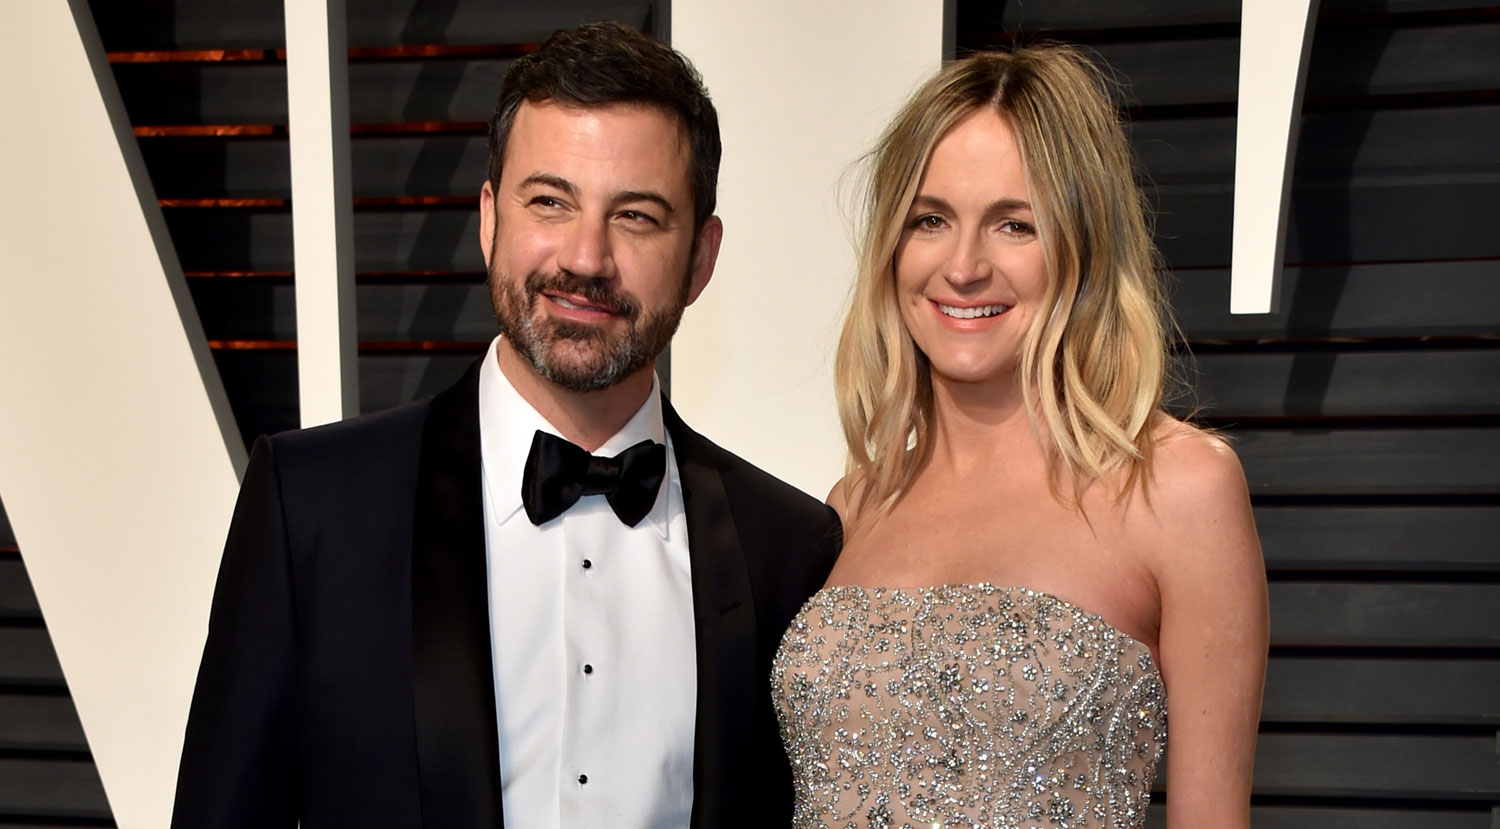 Jimmy Kimmel Holds Pregnant Wife Molly McNearneys Baby